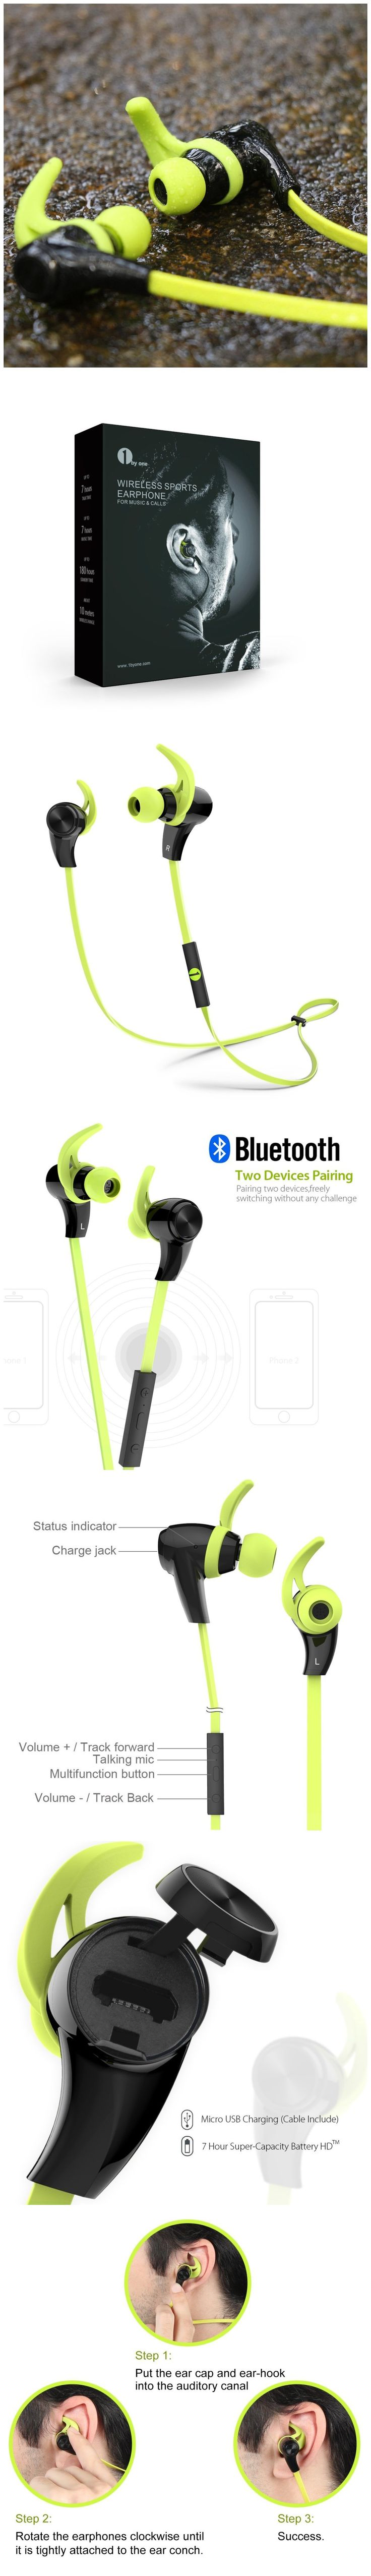 Only $26.96,1byone Bluetooth 4.1 Wireless In-Ear Headphones, Sports Earphones with HD Stereo Sound & Modern, Sweat-Proof and Ergonomic Design, Black & Green